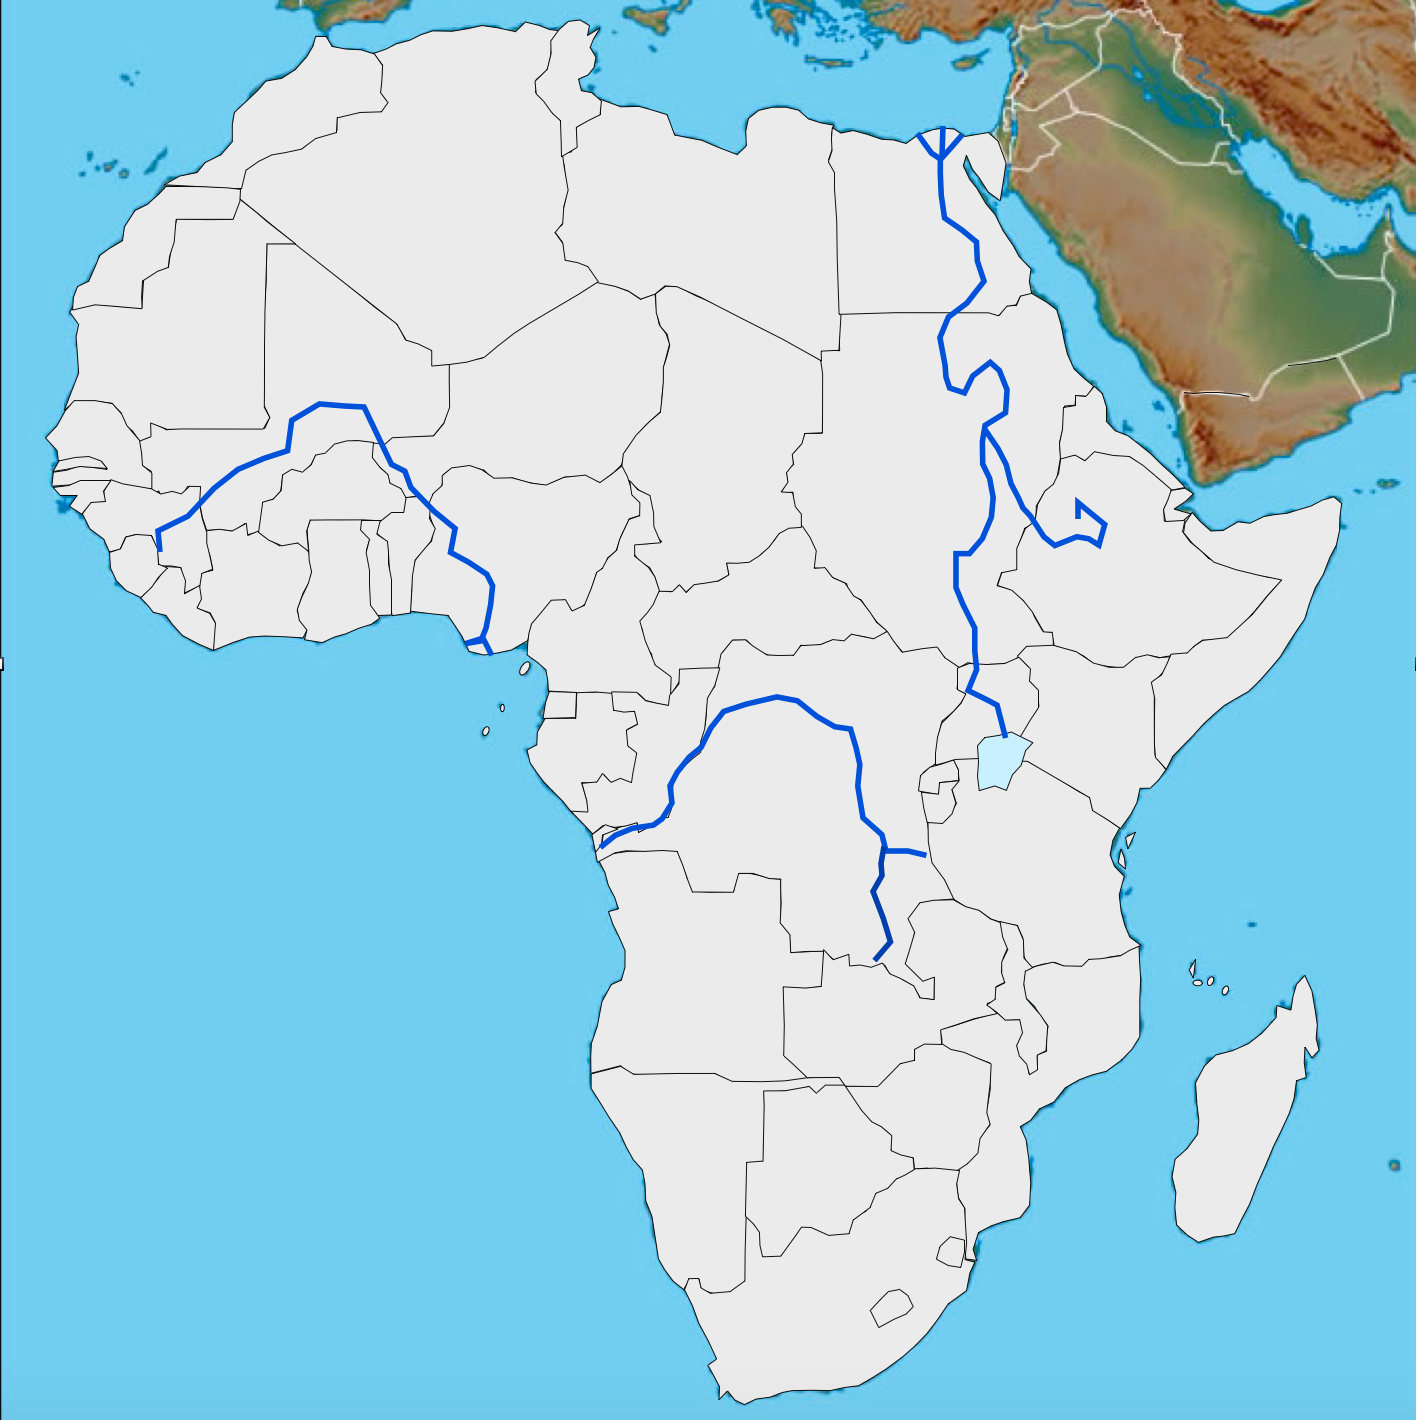 Free Customizable Maps Of Africa For Download GeoCurrents - Burundi clickable map